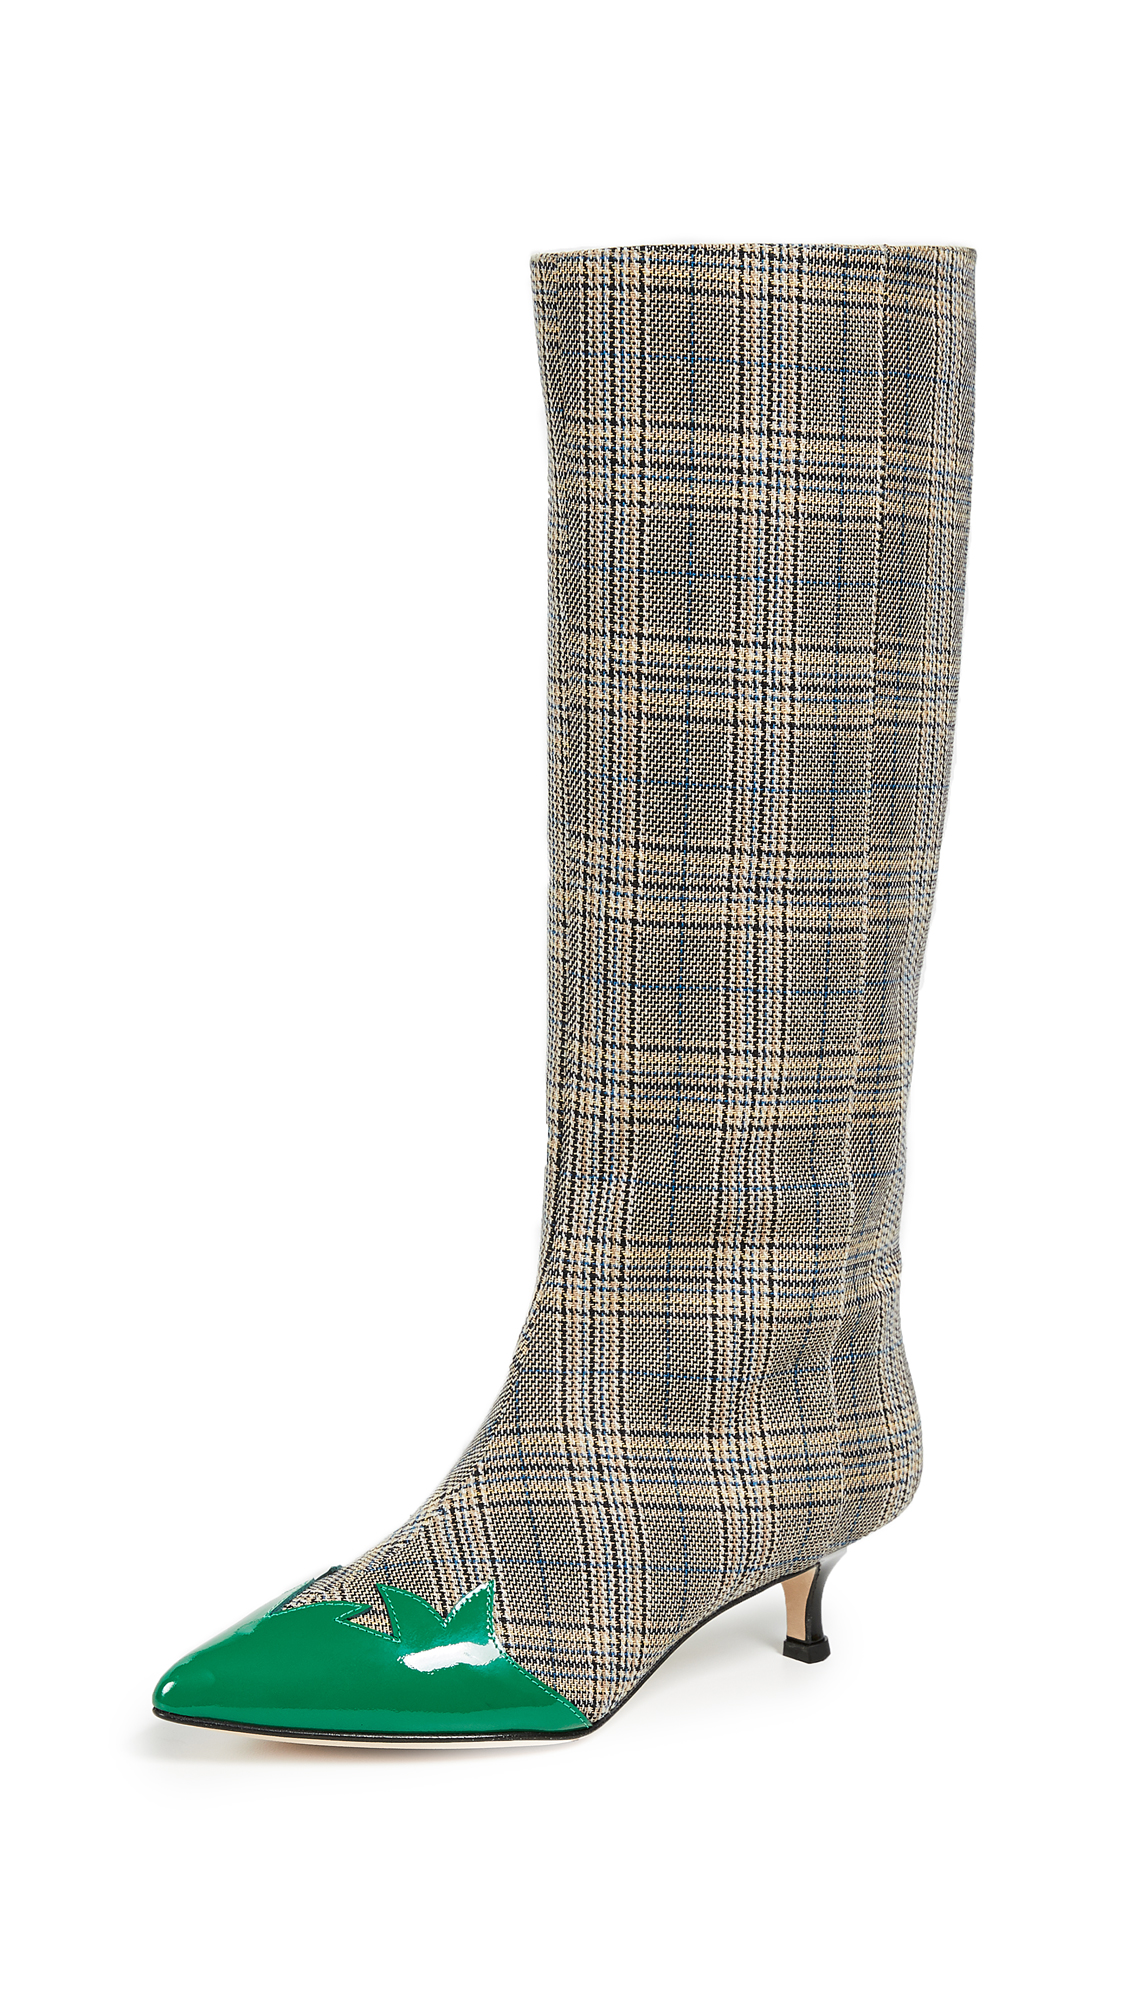 Tibi Evin Boots - Tan/Blue Plaid/Kelly Green